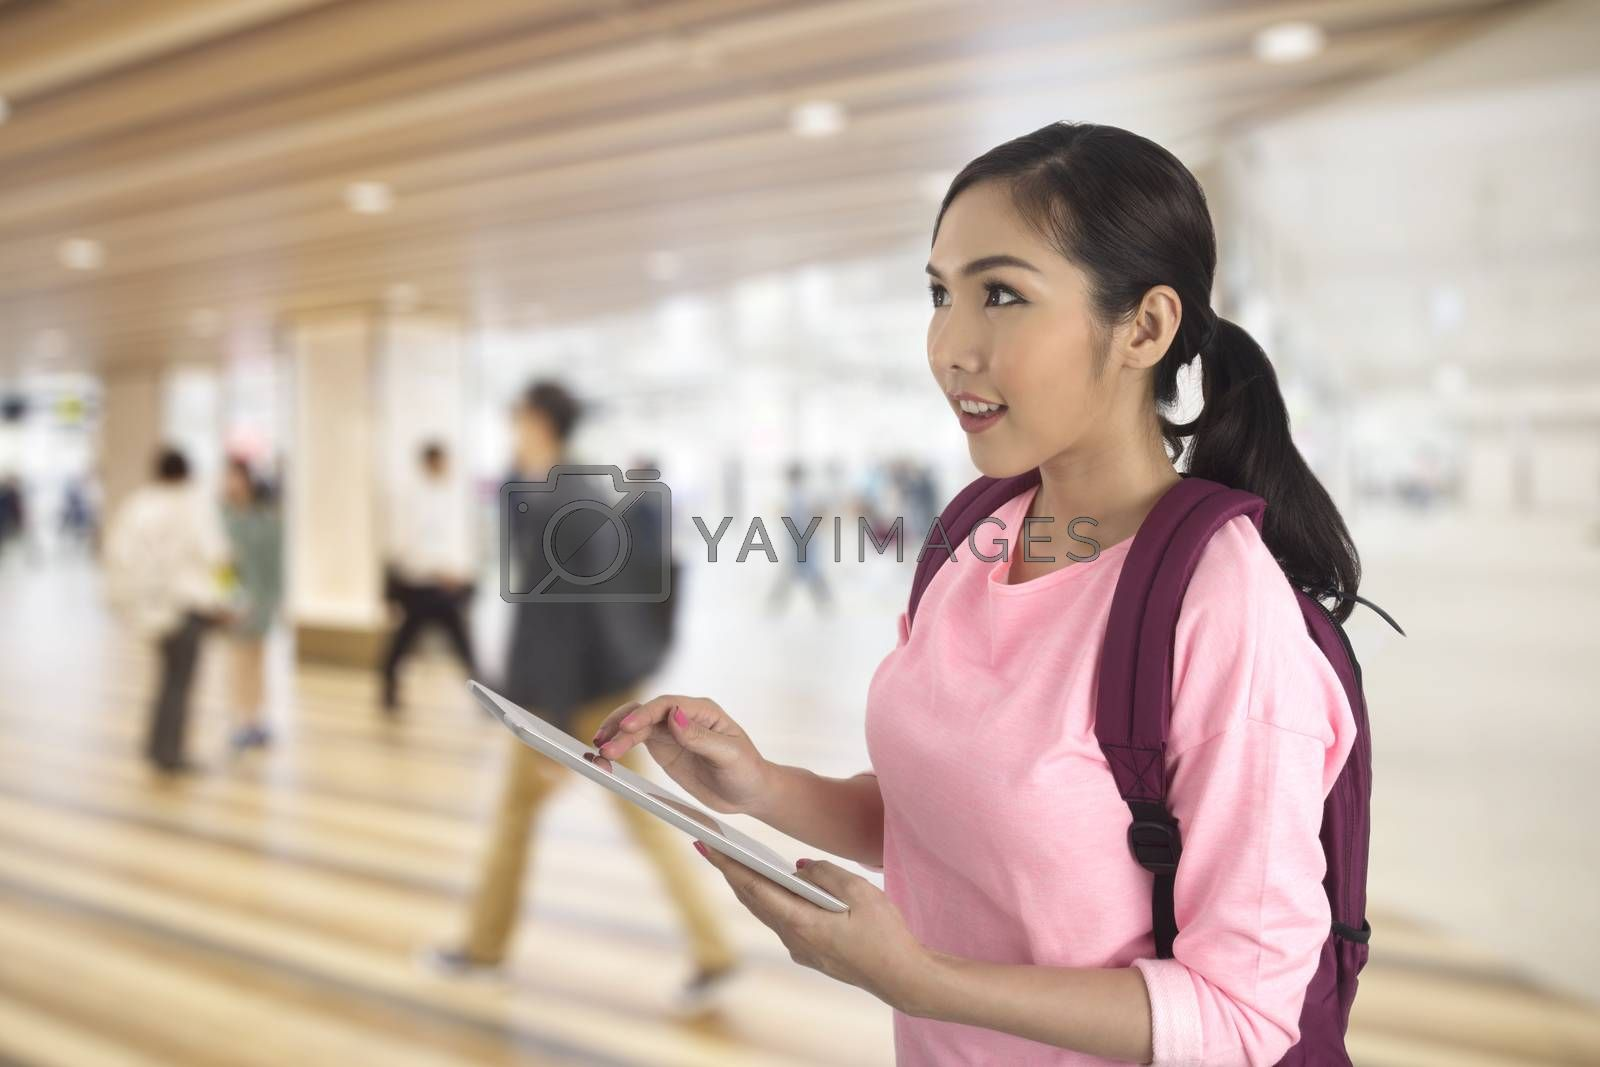 Tourist girl standing on walkway in building using computer tablet finding traveling information.